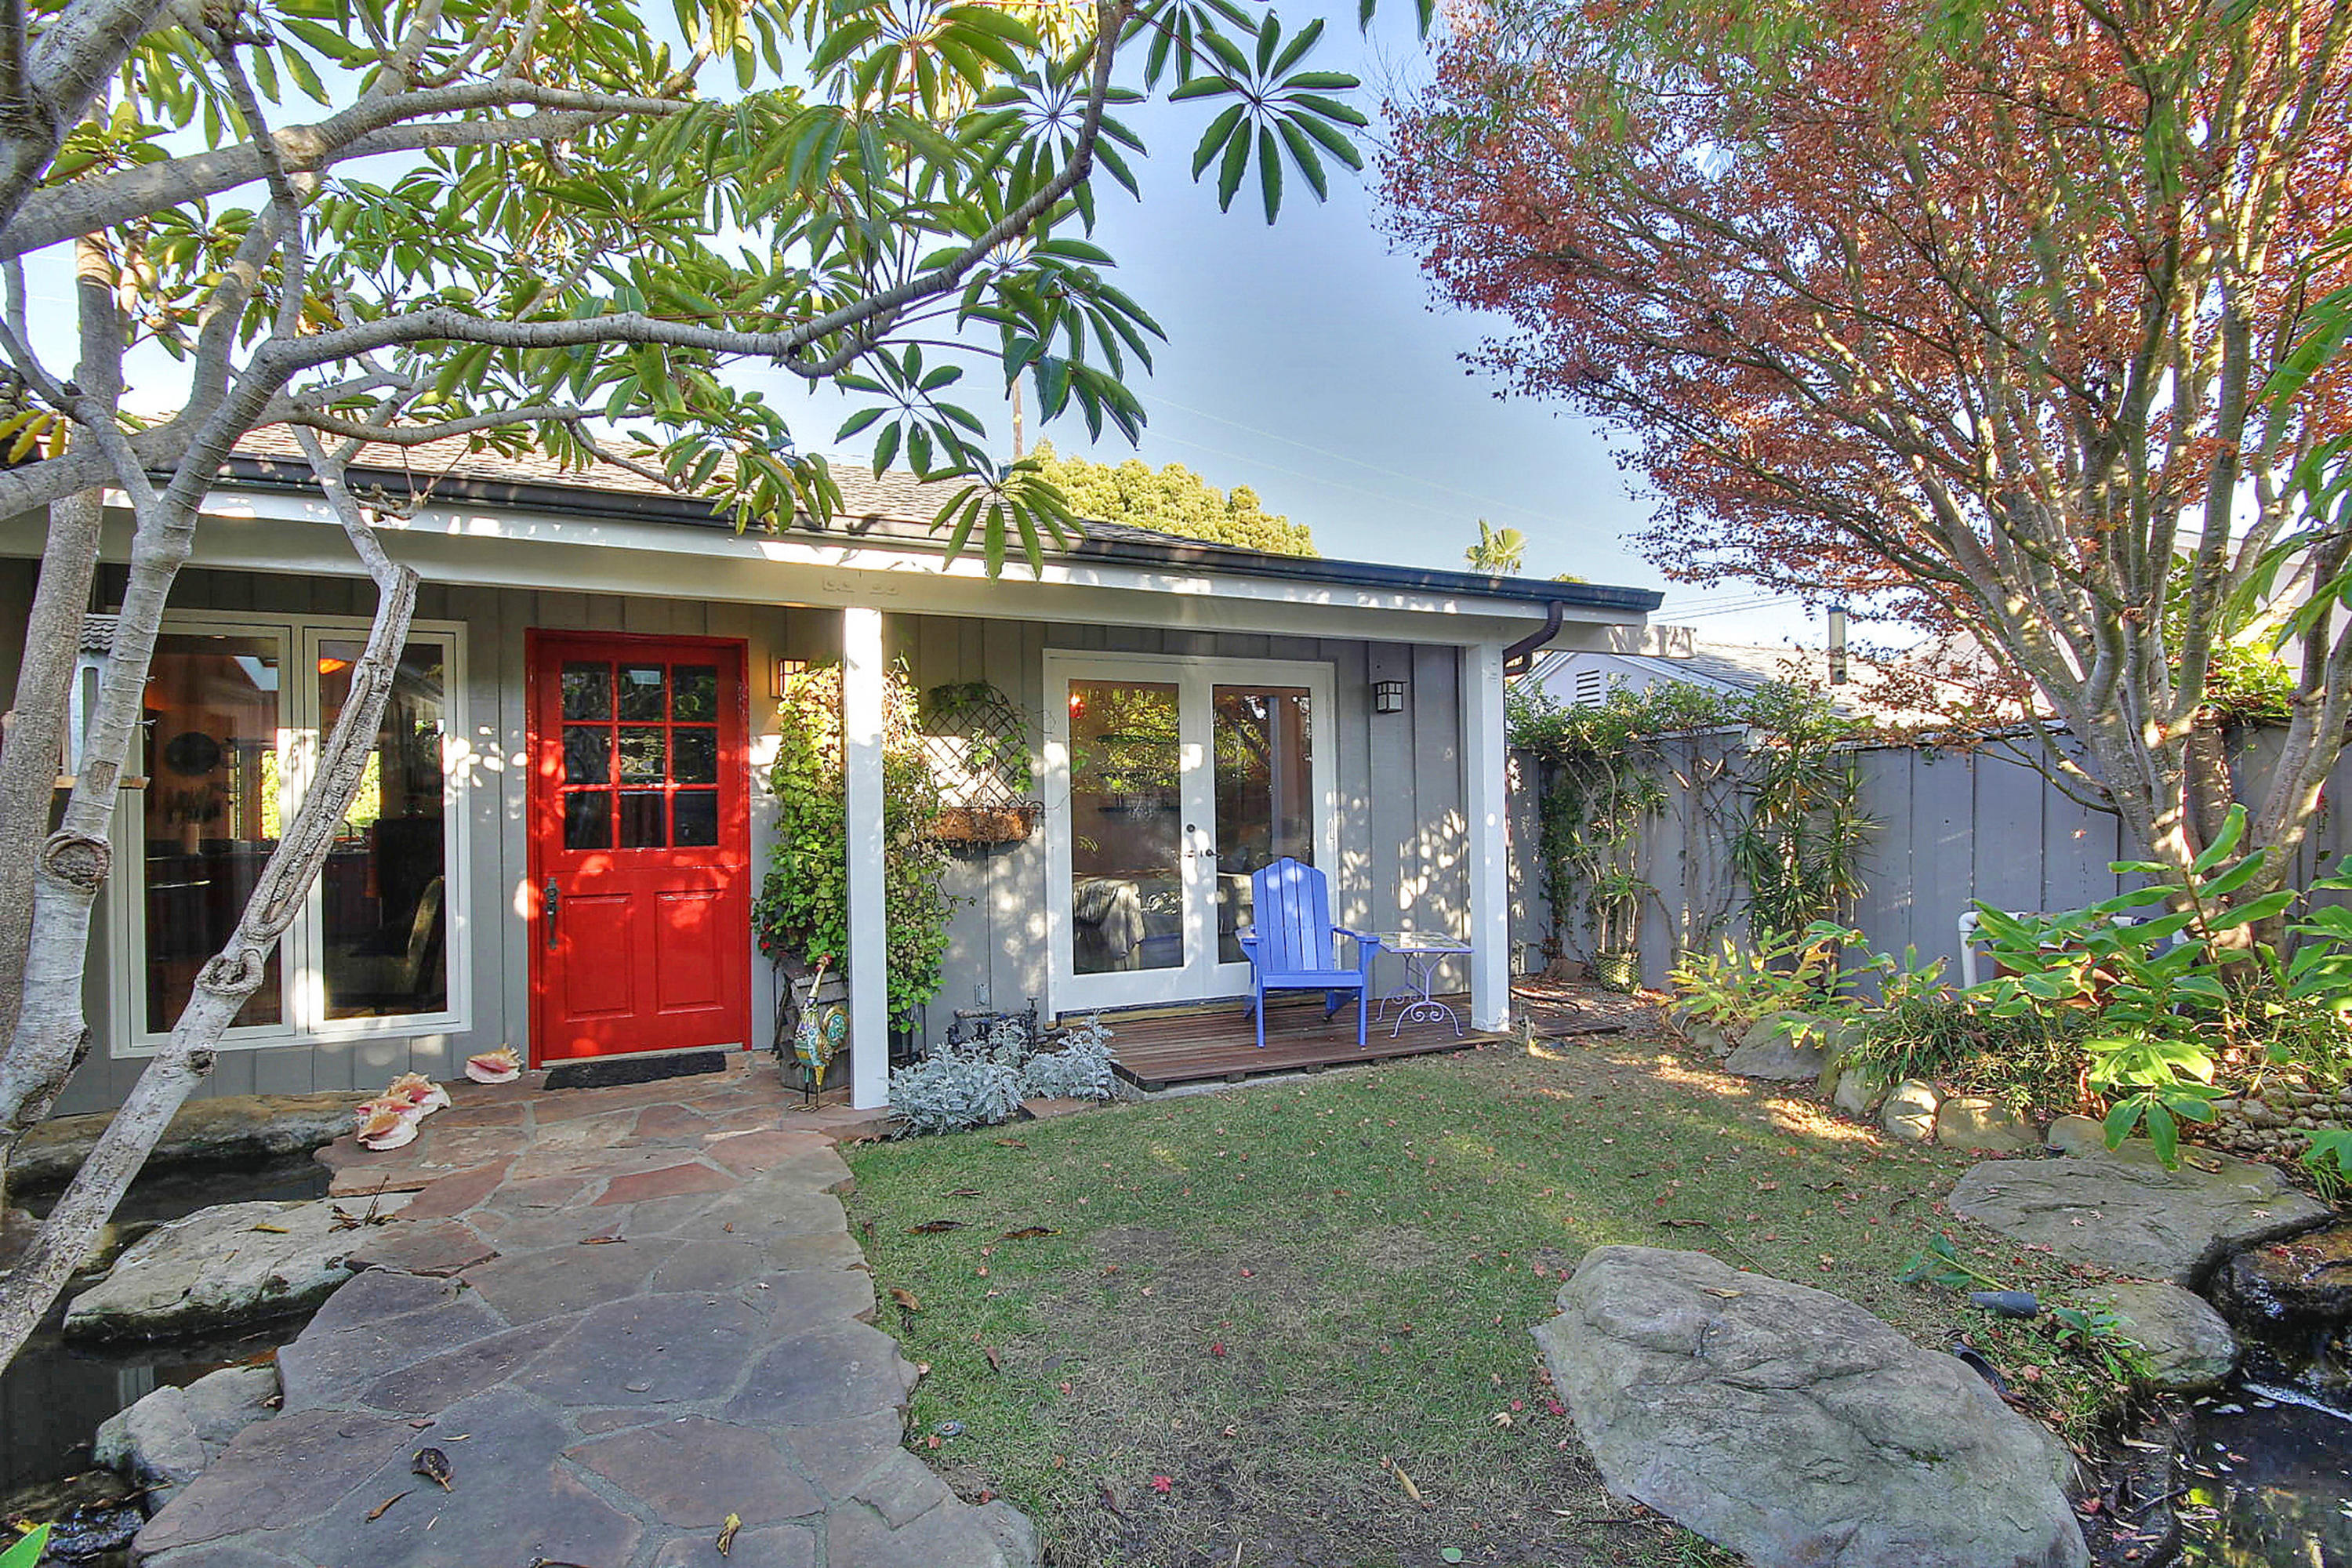 Property photo for 206 La Plata Santa Barbara, California 93109 - 15-885